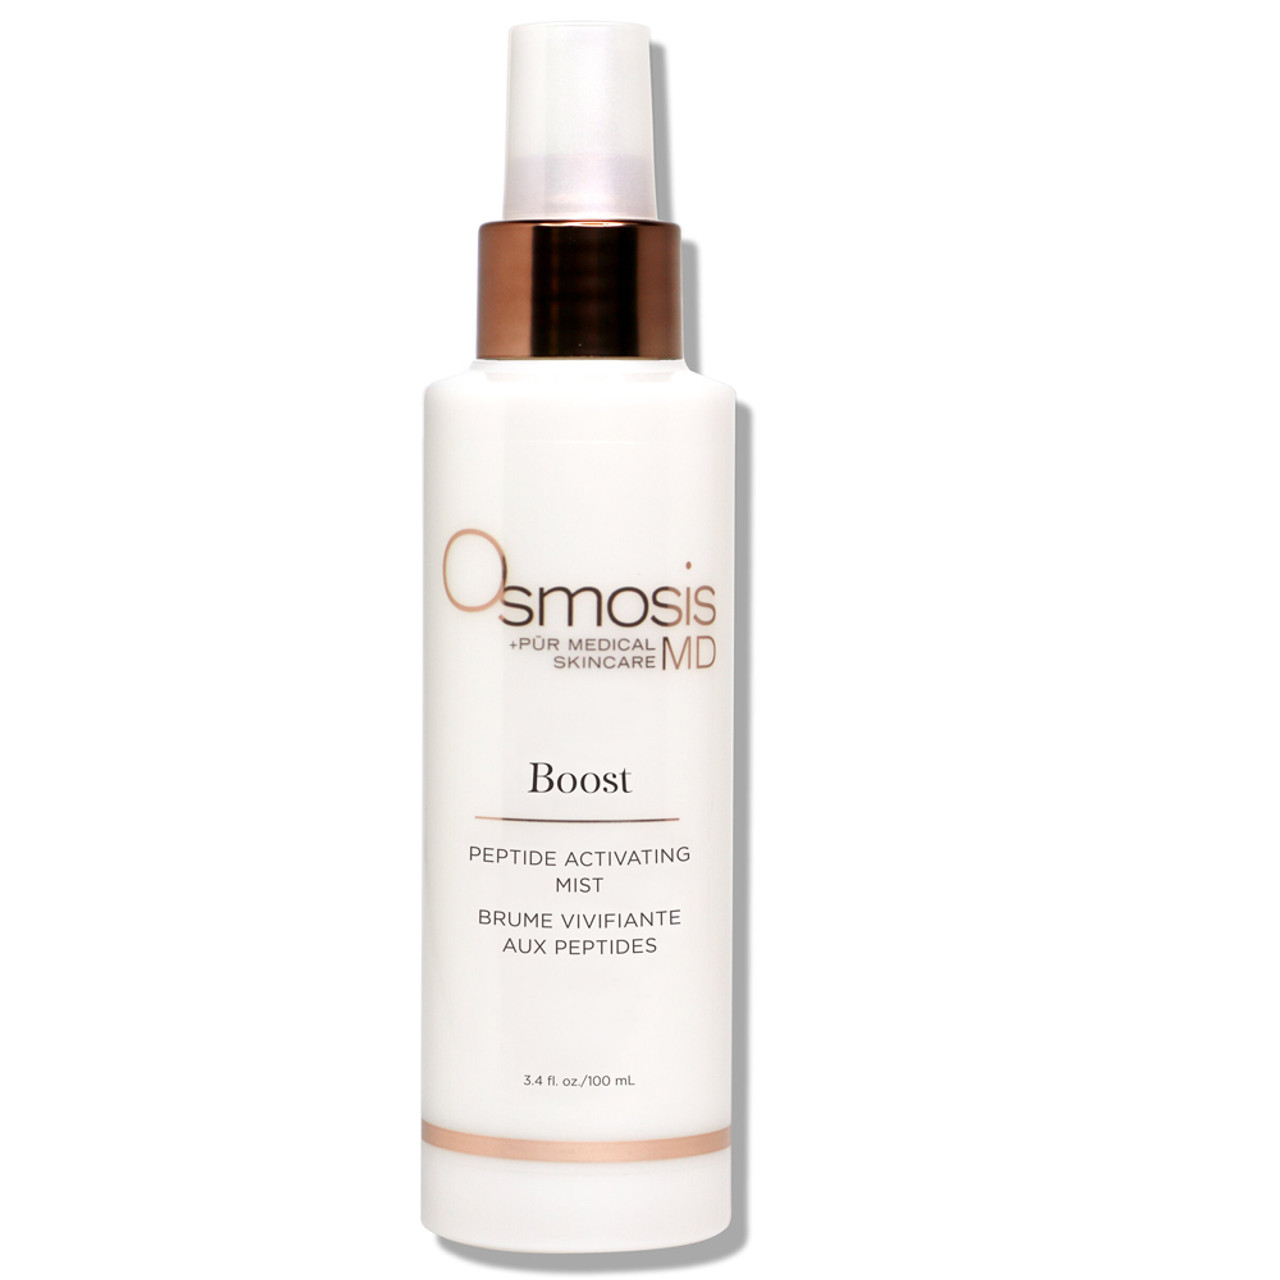 Osmosis +Skincare MD Boost - Peptide Activating Mask